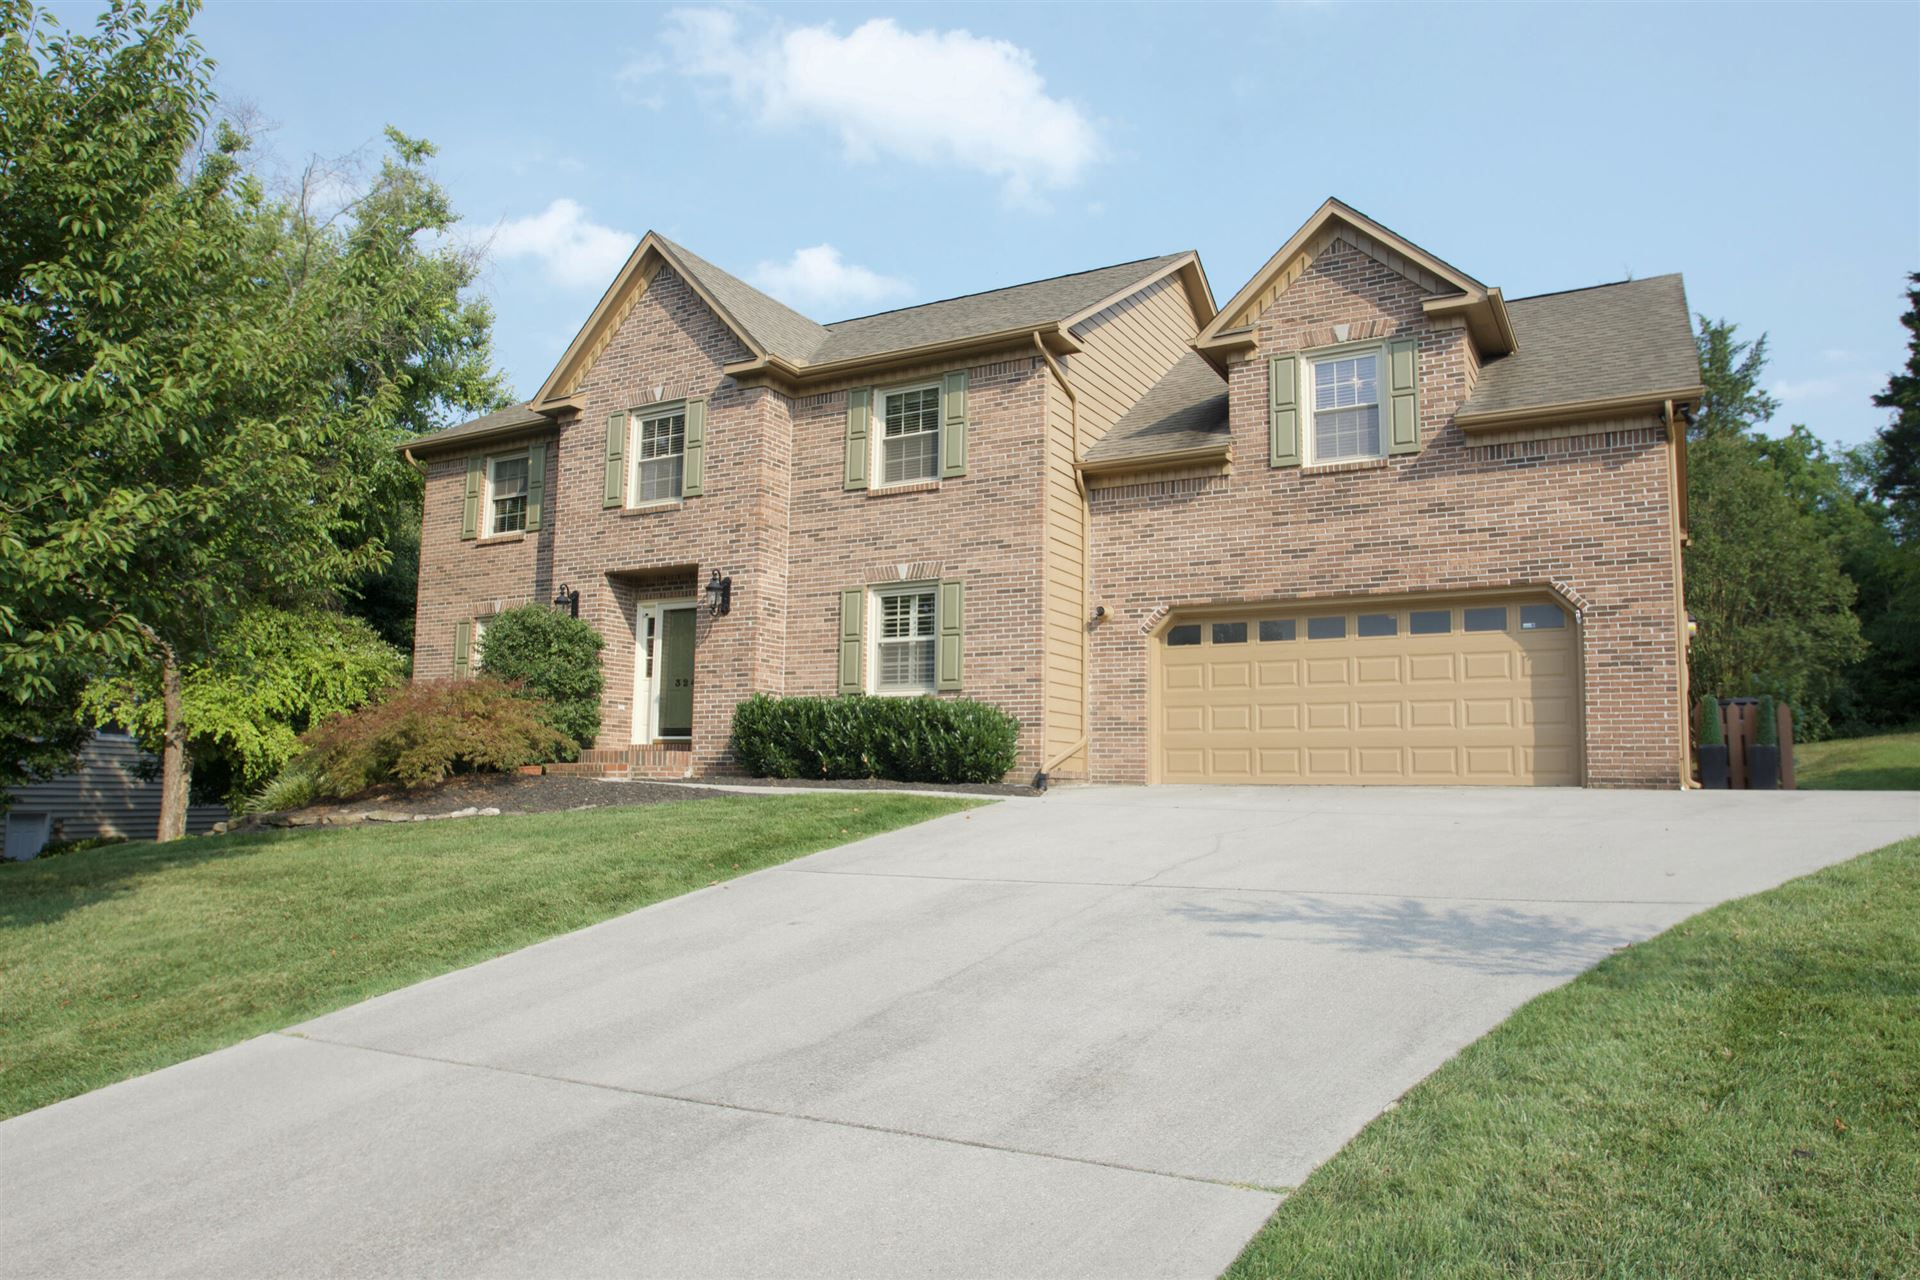 Photo of 324 Sweetgum Drive, Knoxville, TN 37934 (MLS # 1162344)